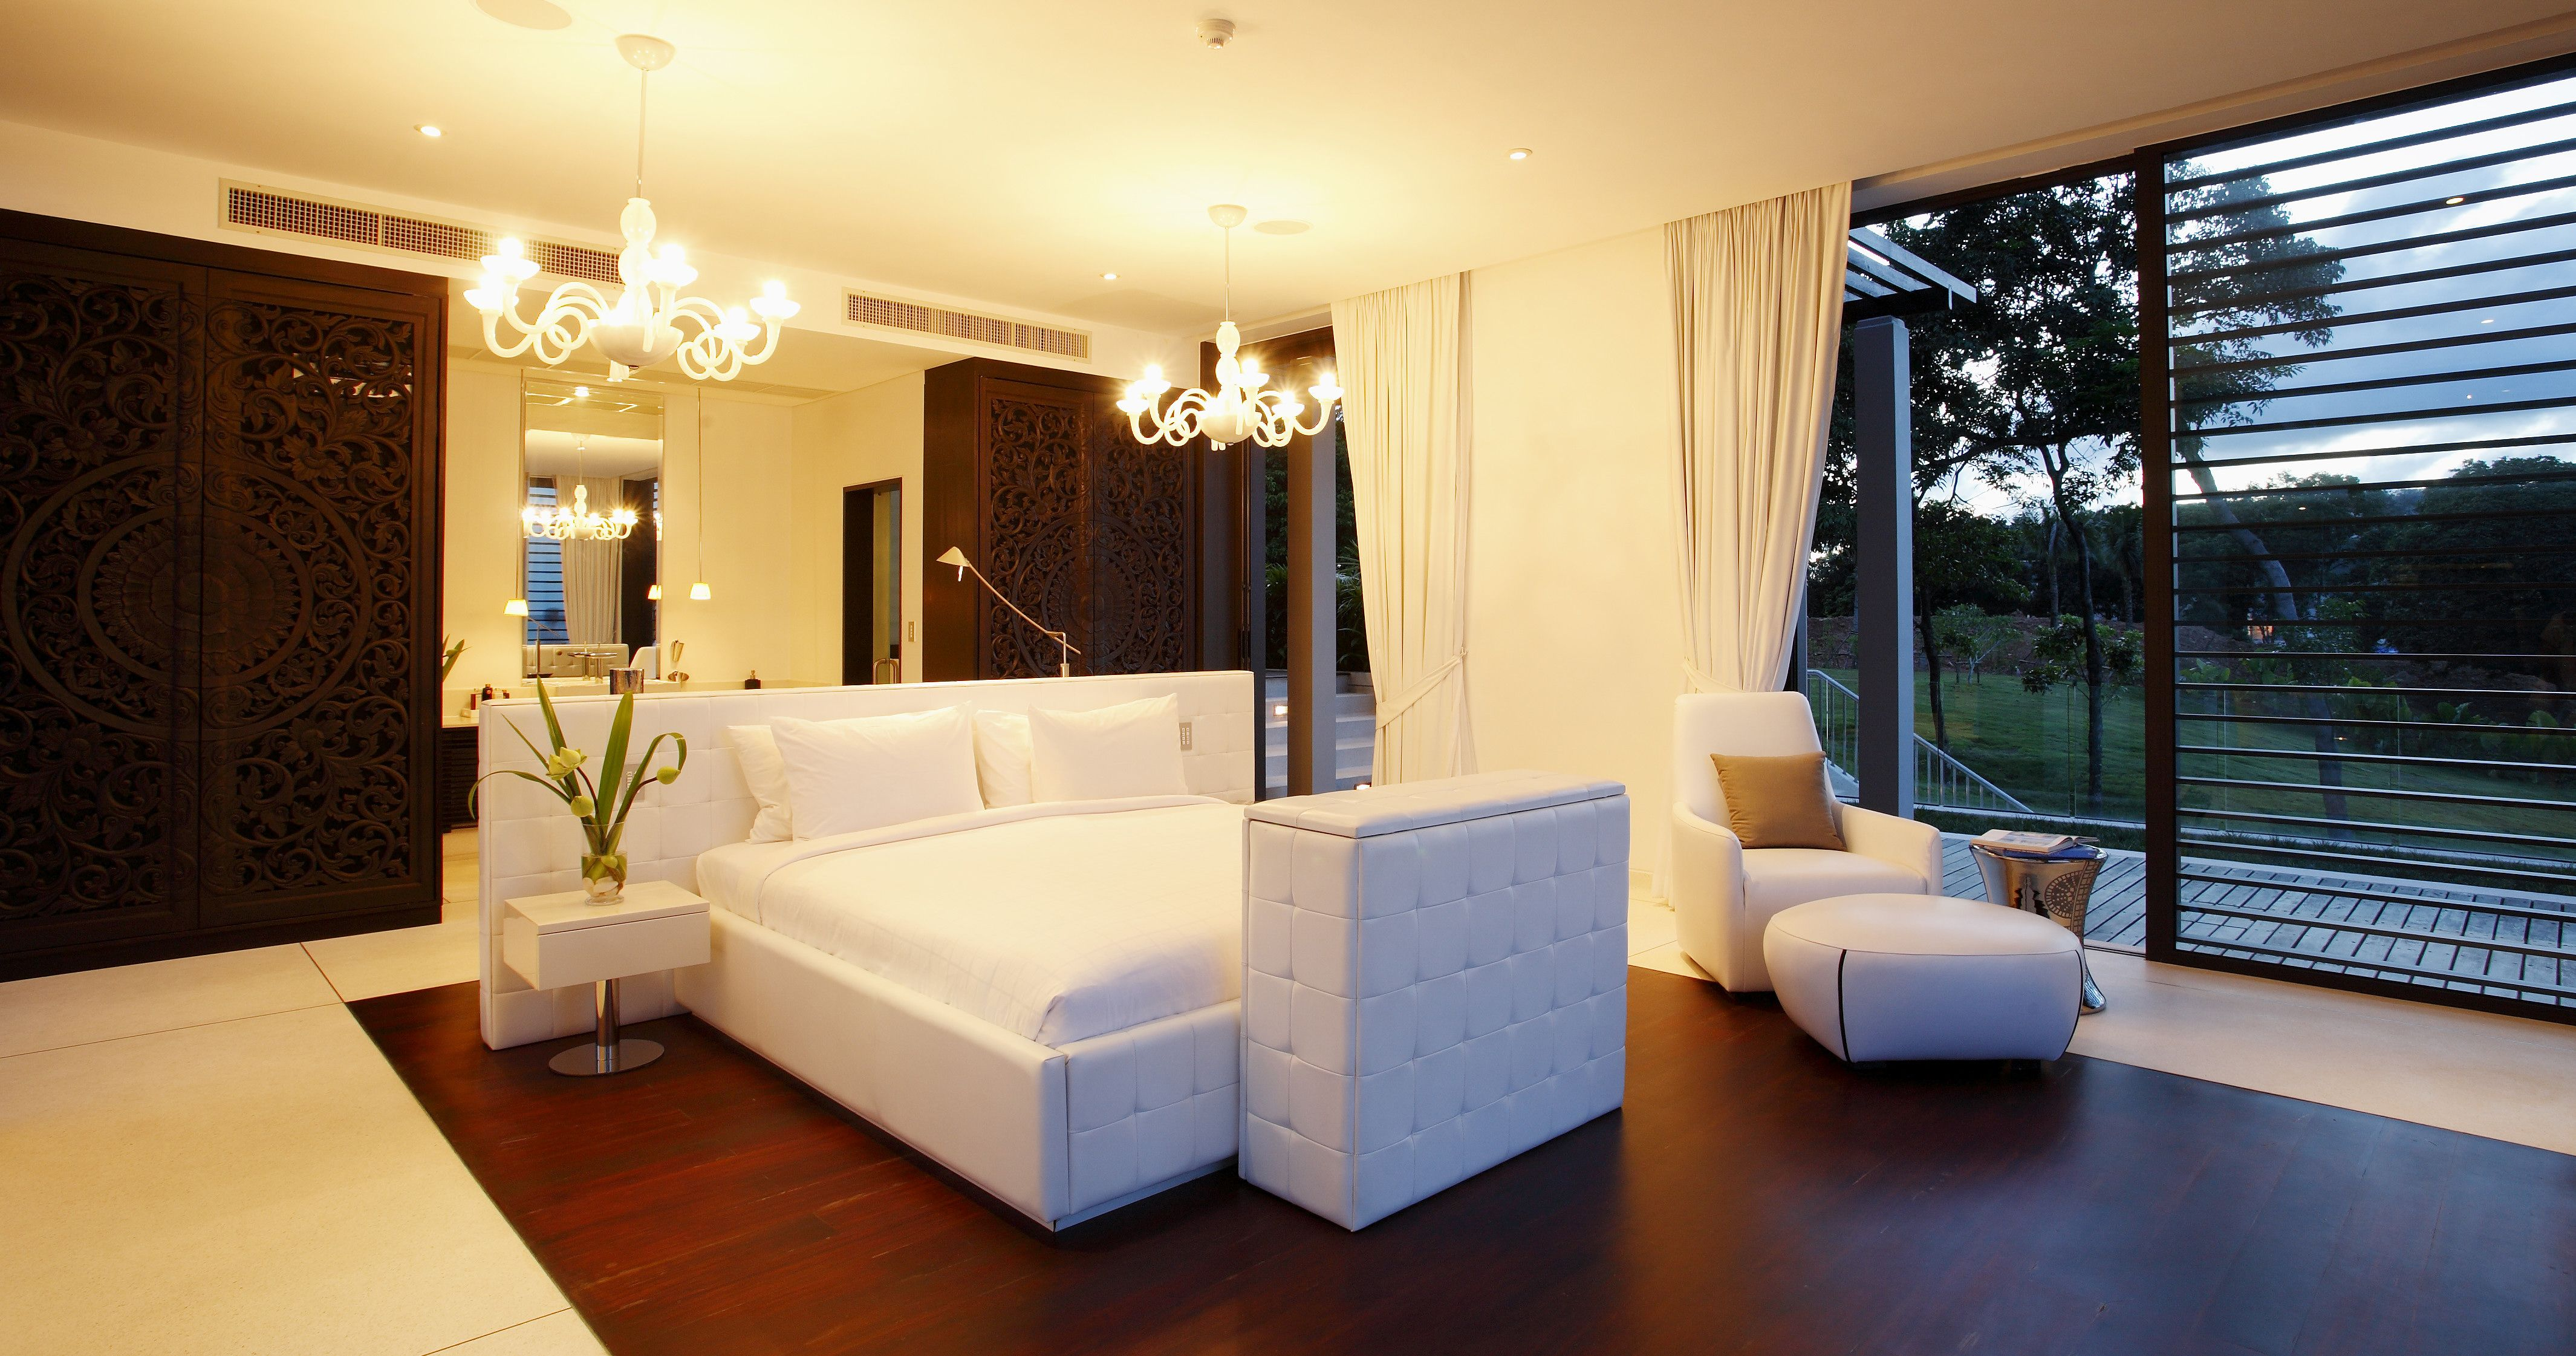 A bedroom with contemporary style. There are two